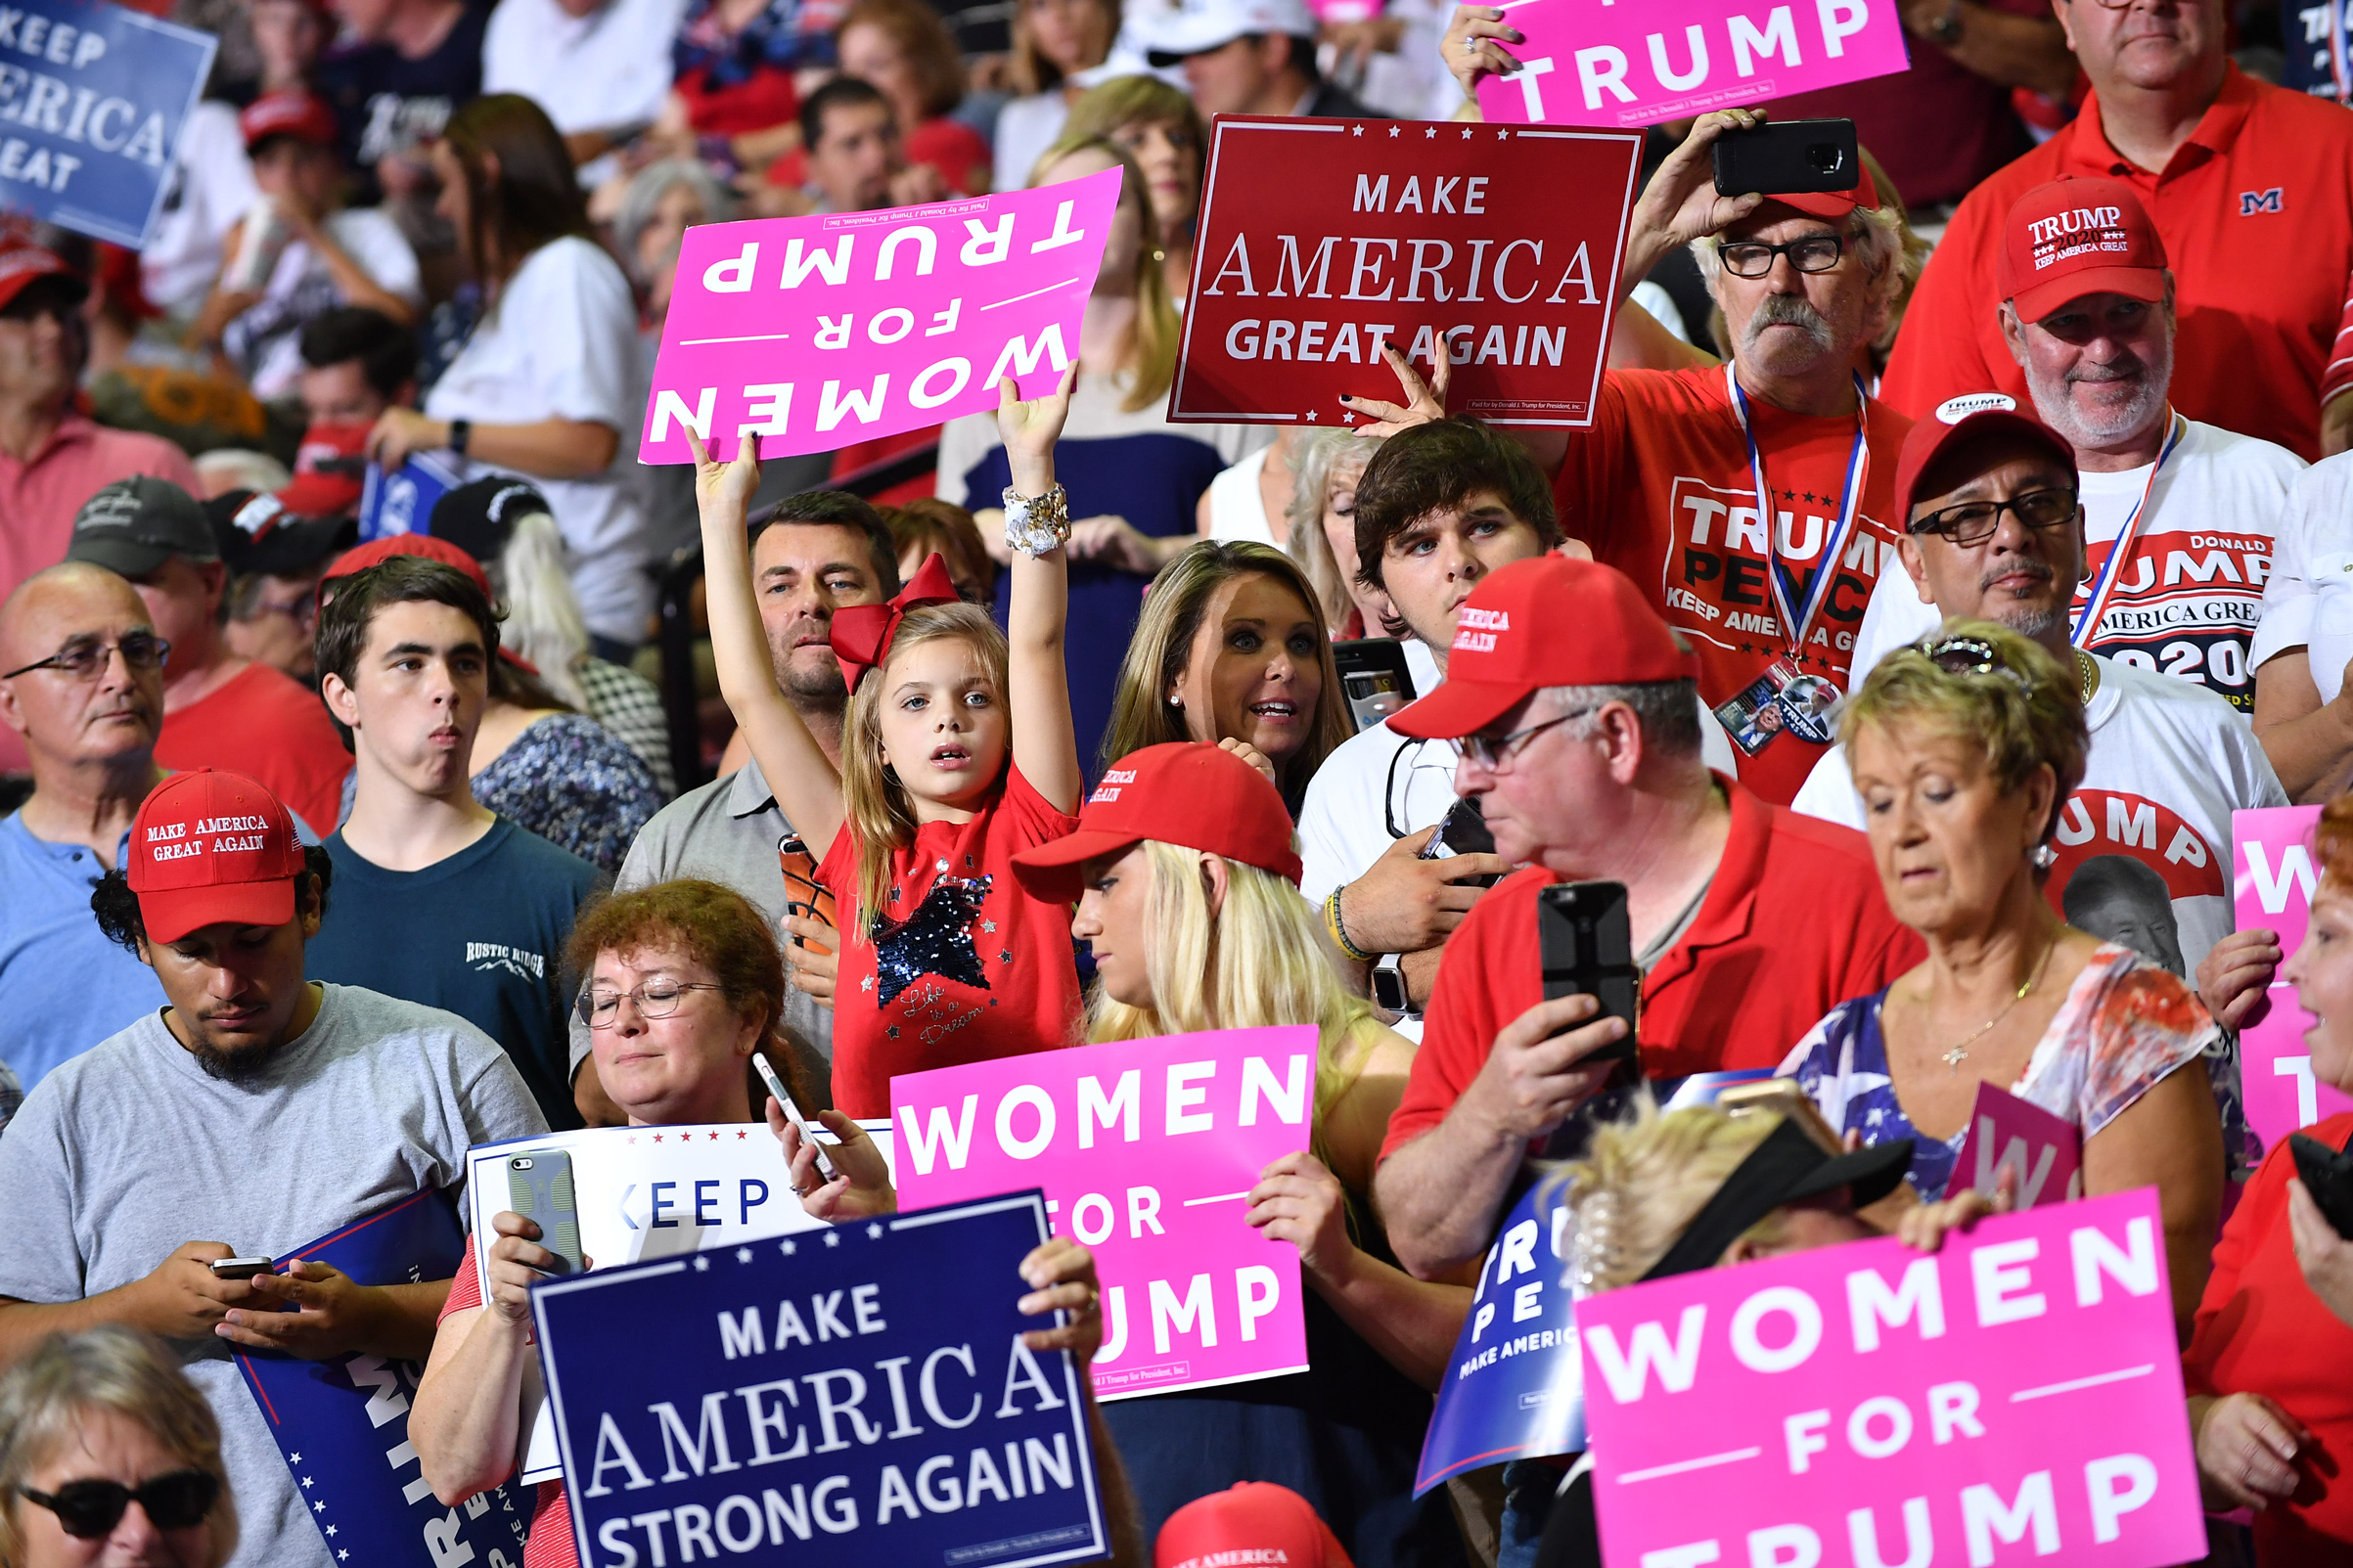 Supporters of President Donald Trump attend a 'Make America Great Again' rally in Southaven, Miss., on Oct. 2, 2018.